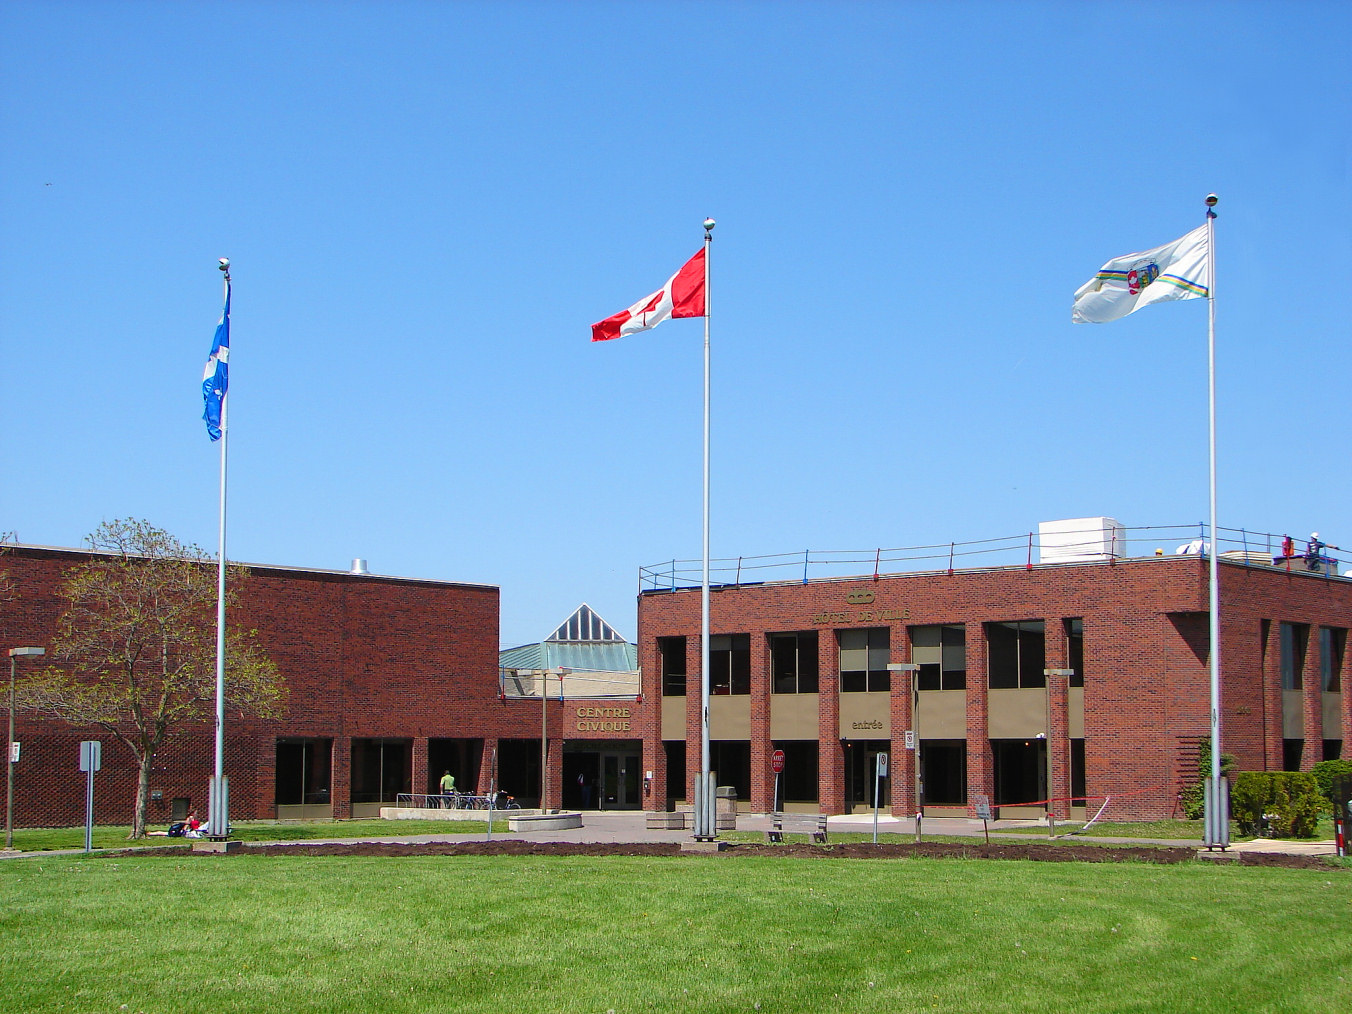 View of Dollard-des-Ormeaux City Hall